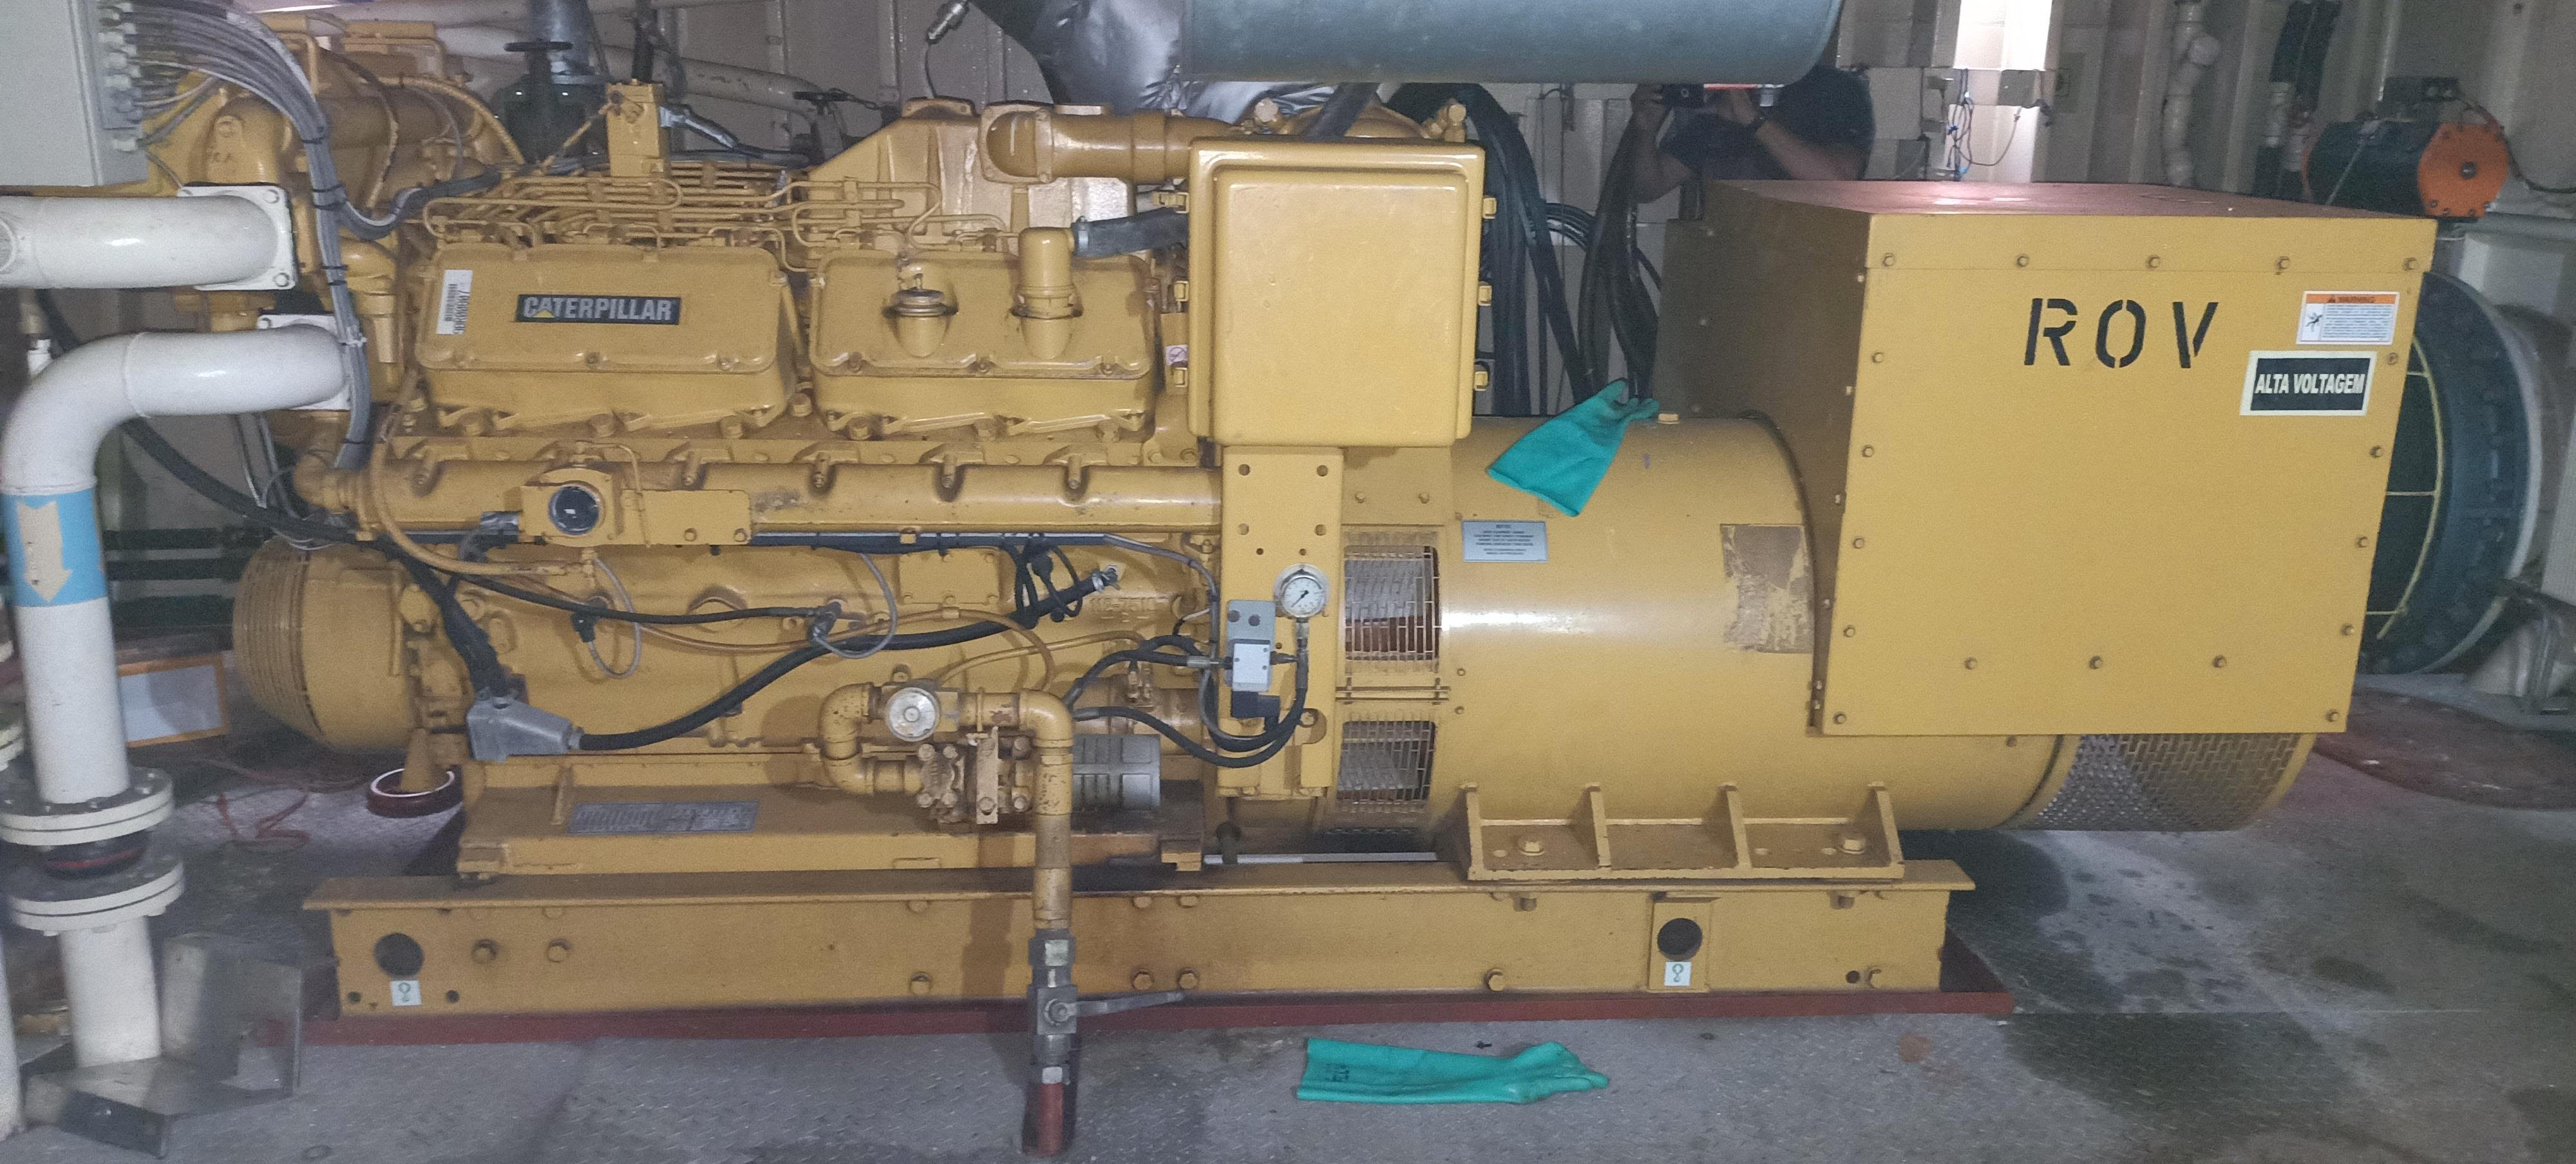 CATERPILLAR 3412C GENERATOR SETS FOR SALE